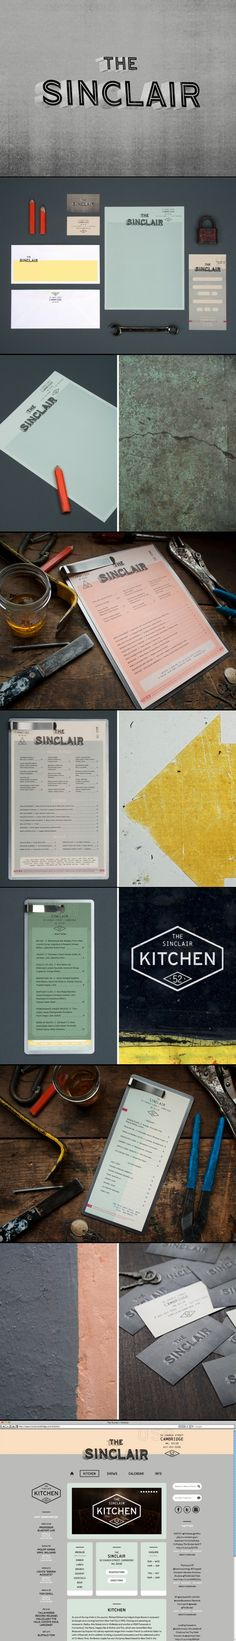 #sinclair #kitchen #branding | #stationary #corporate #design #corporatedesign #identity #branding #marketing < repinned by www.BlickeDeeler.de | Visit our website: www.blickedeeler.de/leistungen/corporate-design